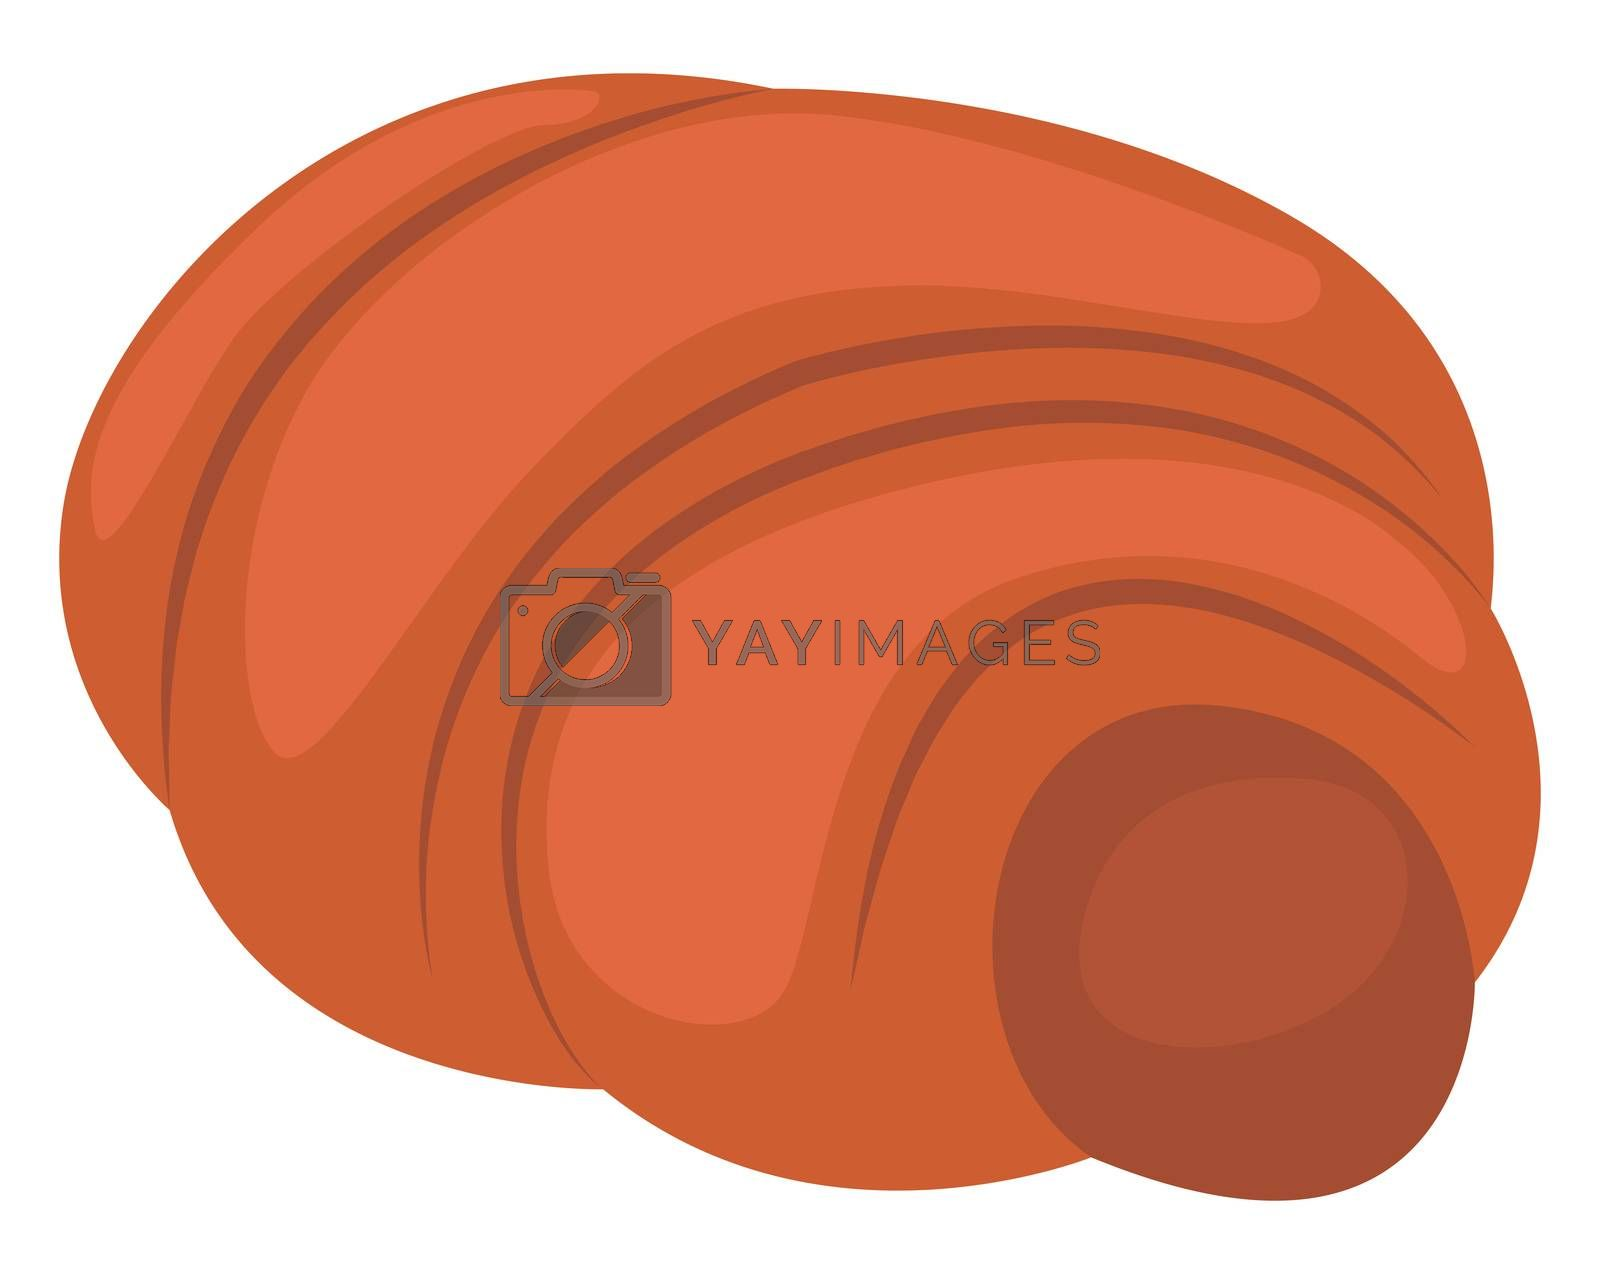 Sweet potato, illustration, vector on white background